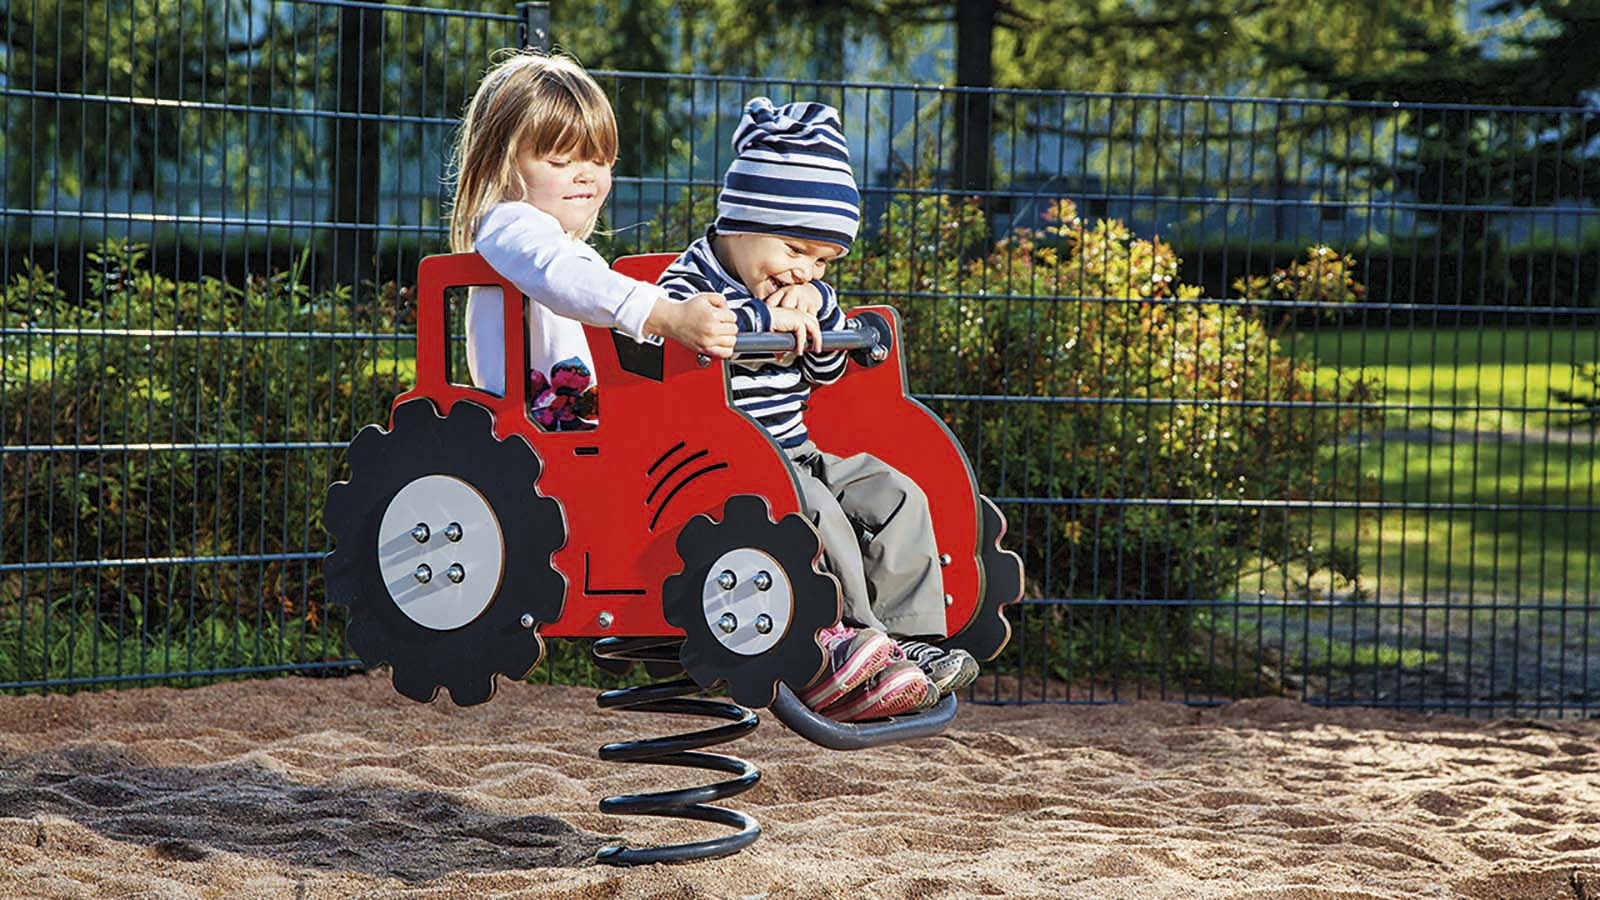 SOLITAIRES_010515M_TRACTOR_01.jpg